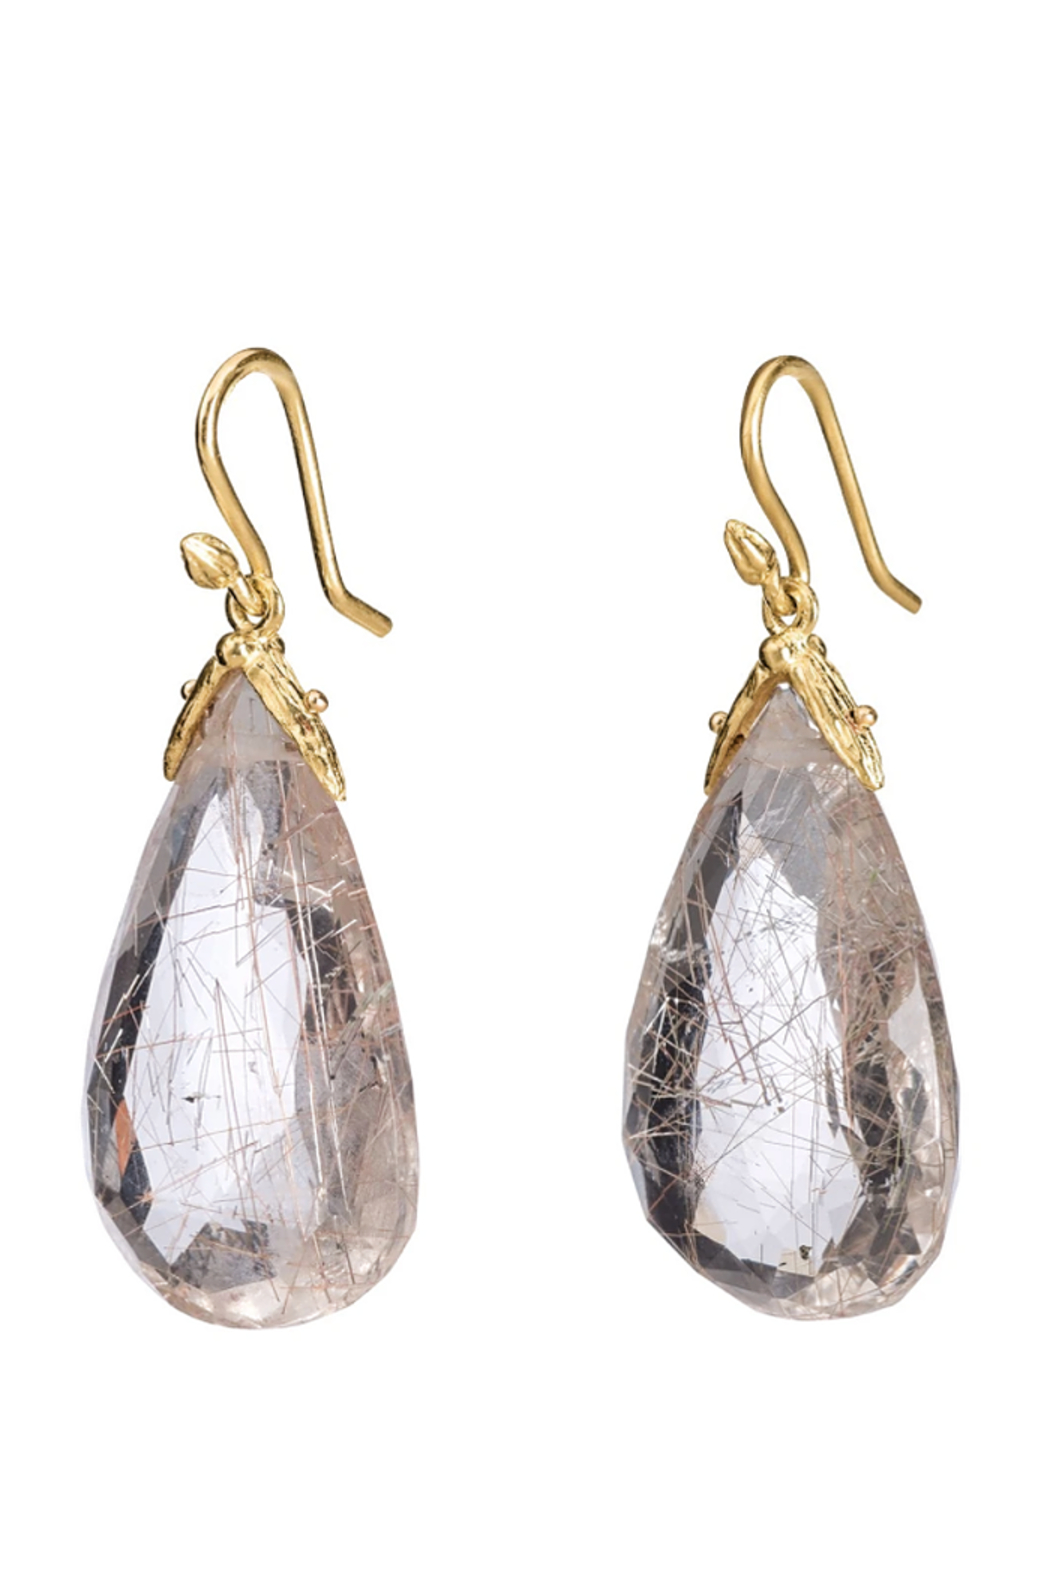 Gabrielle Sanchez Faceted Oval Rutilated Quartz Petal Earring 14x18x6mm, 18k - Main Image